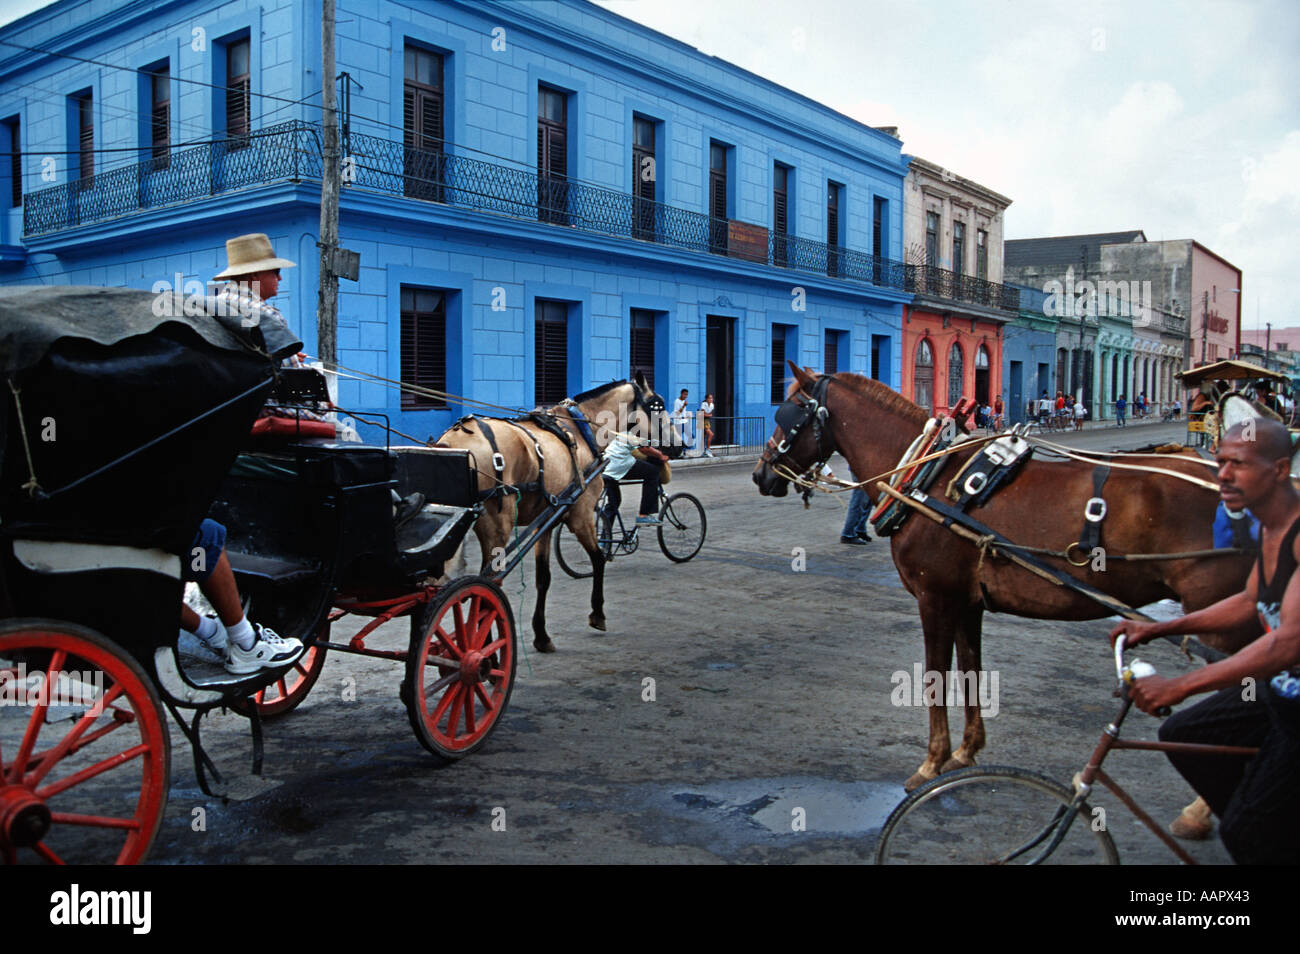 Street scene in Cardenas Cuba Man on bicycle and horse drawn carriages in the street Colonial buildings - Stock Image